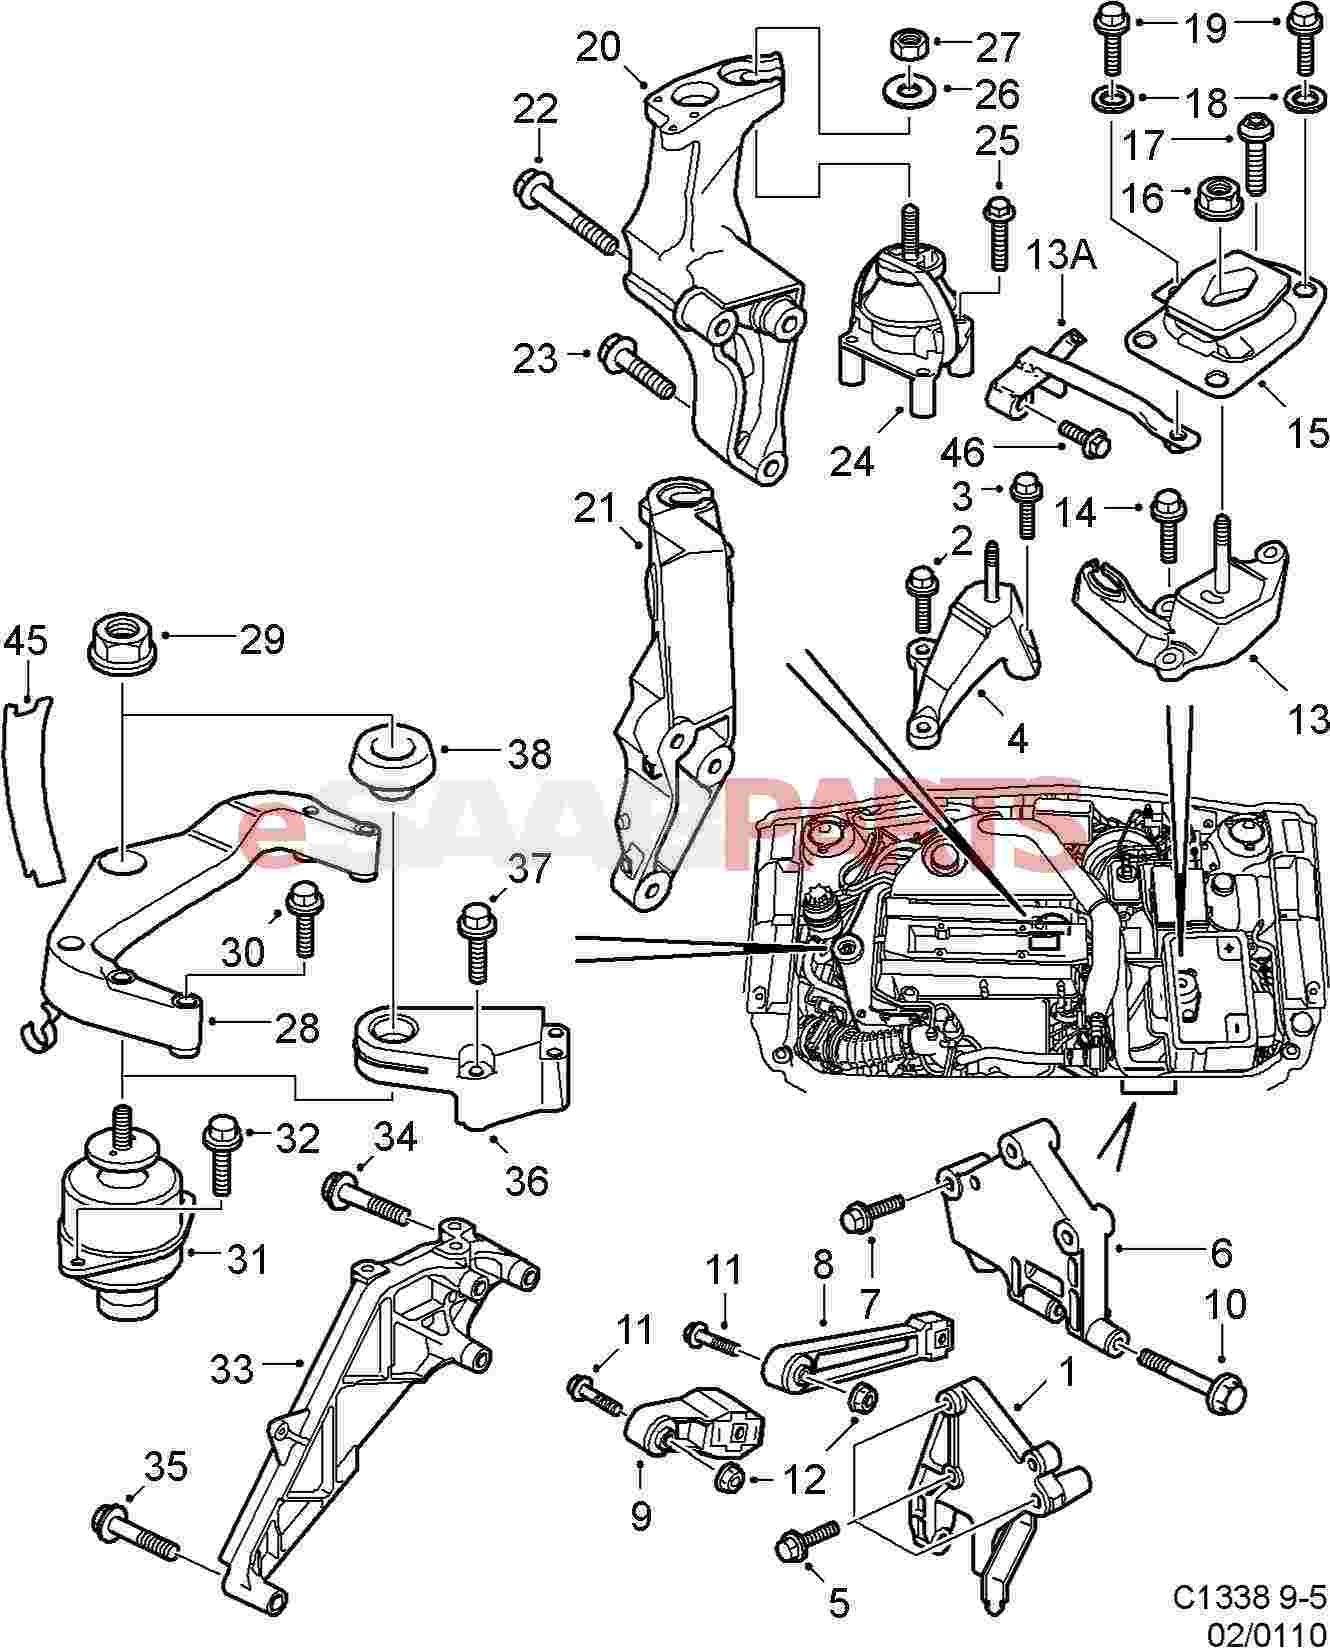 hight resolution of saab 9 5 engine diagram schematic wiring diagrams u2022 rh arcomics co saab 9 5 3 0